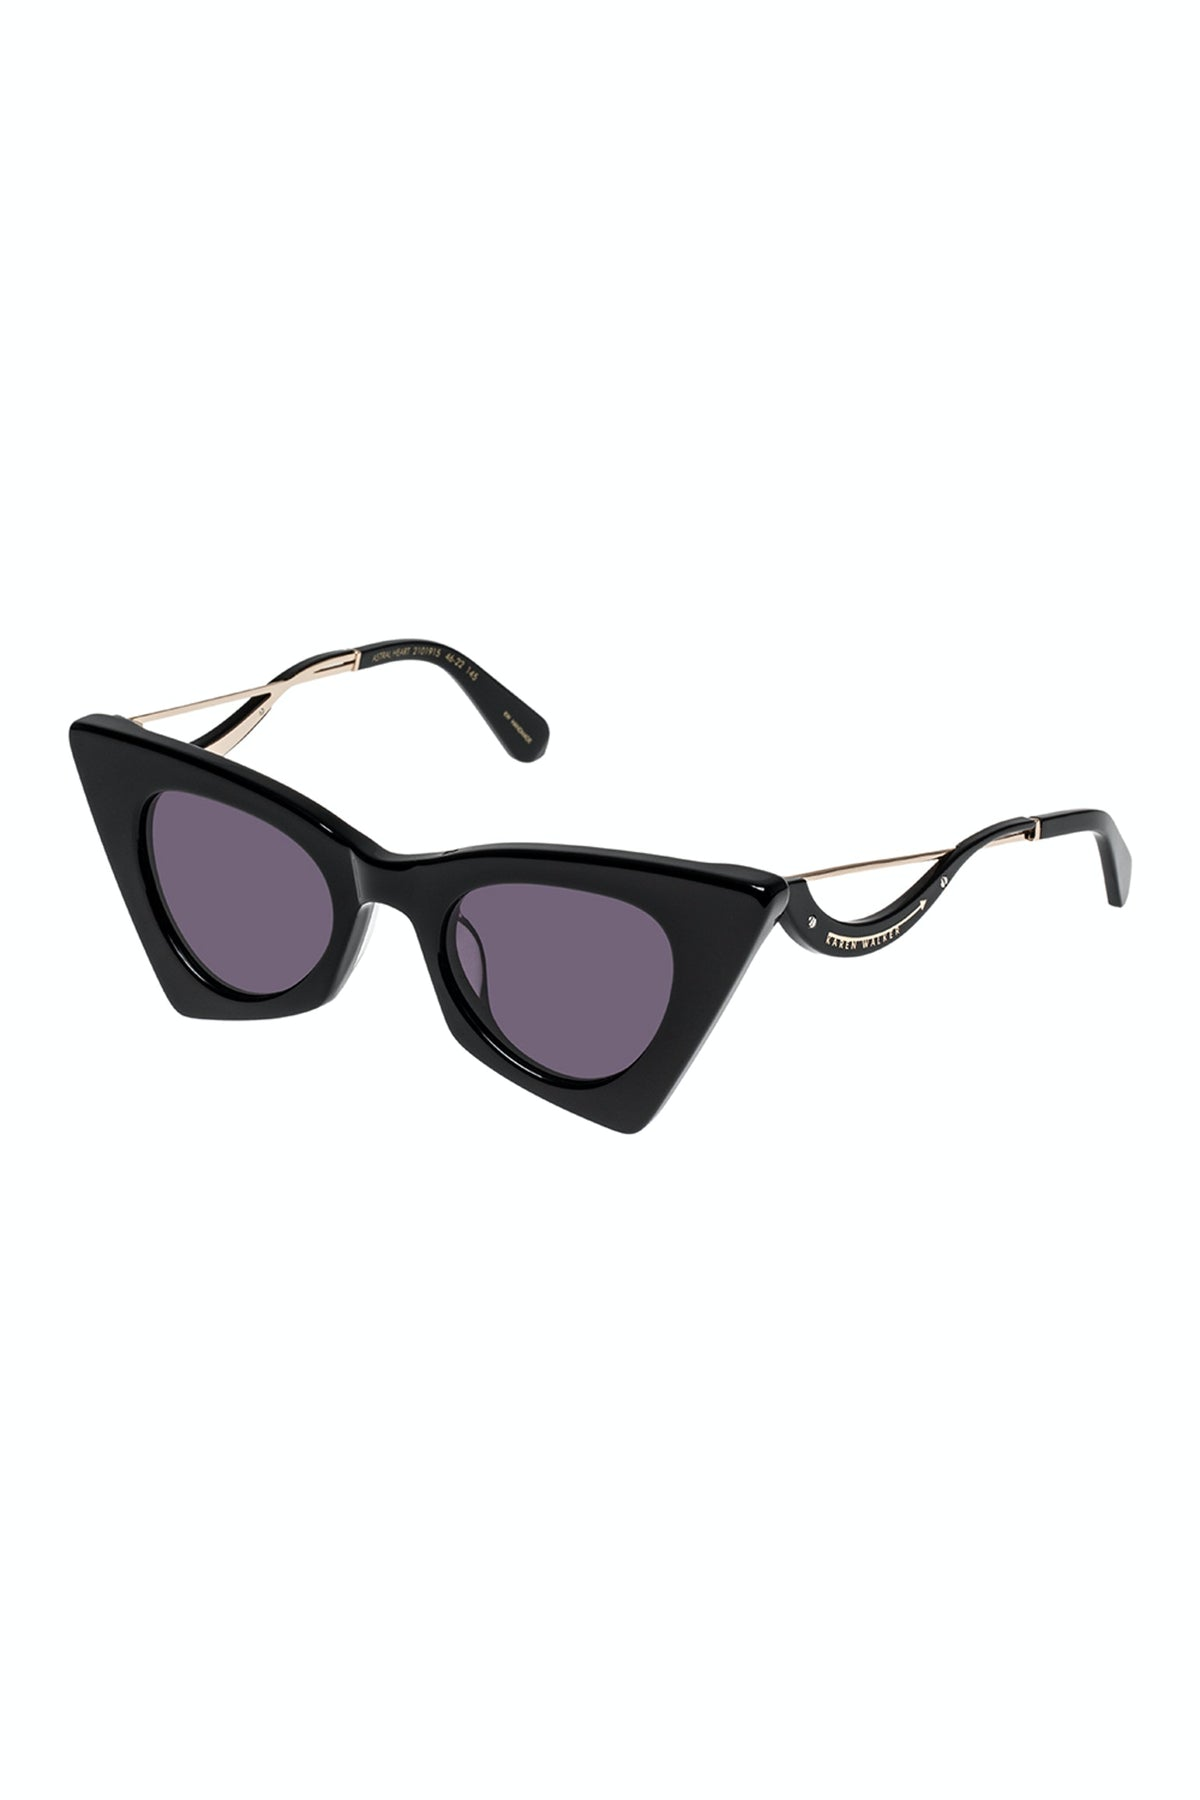 Karen Walker Astral Heart // Black